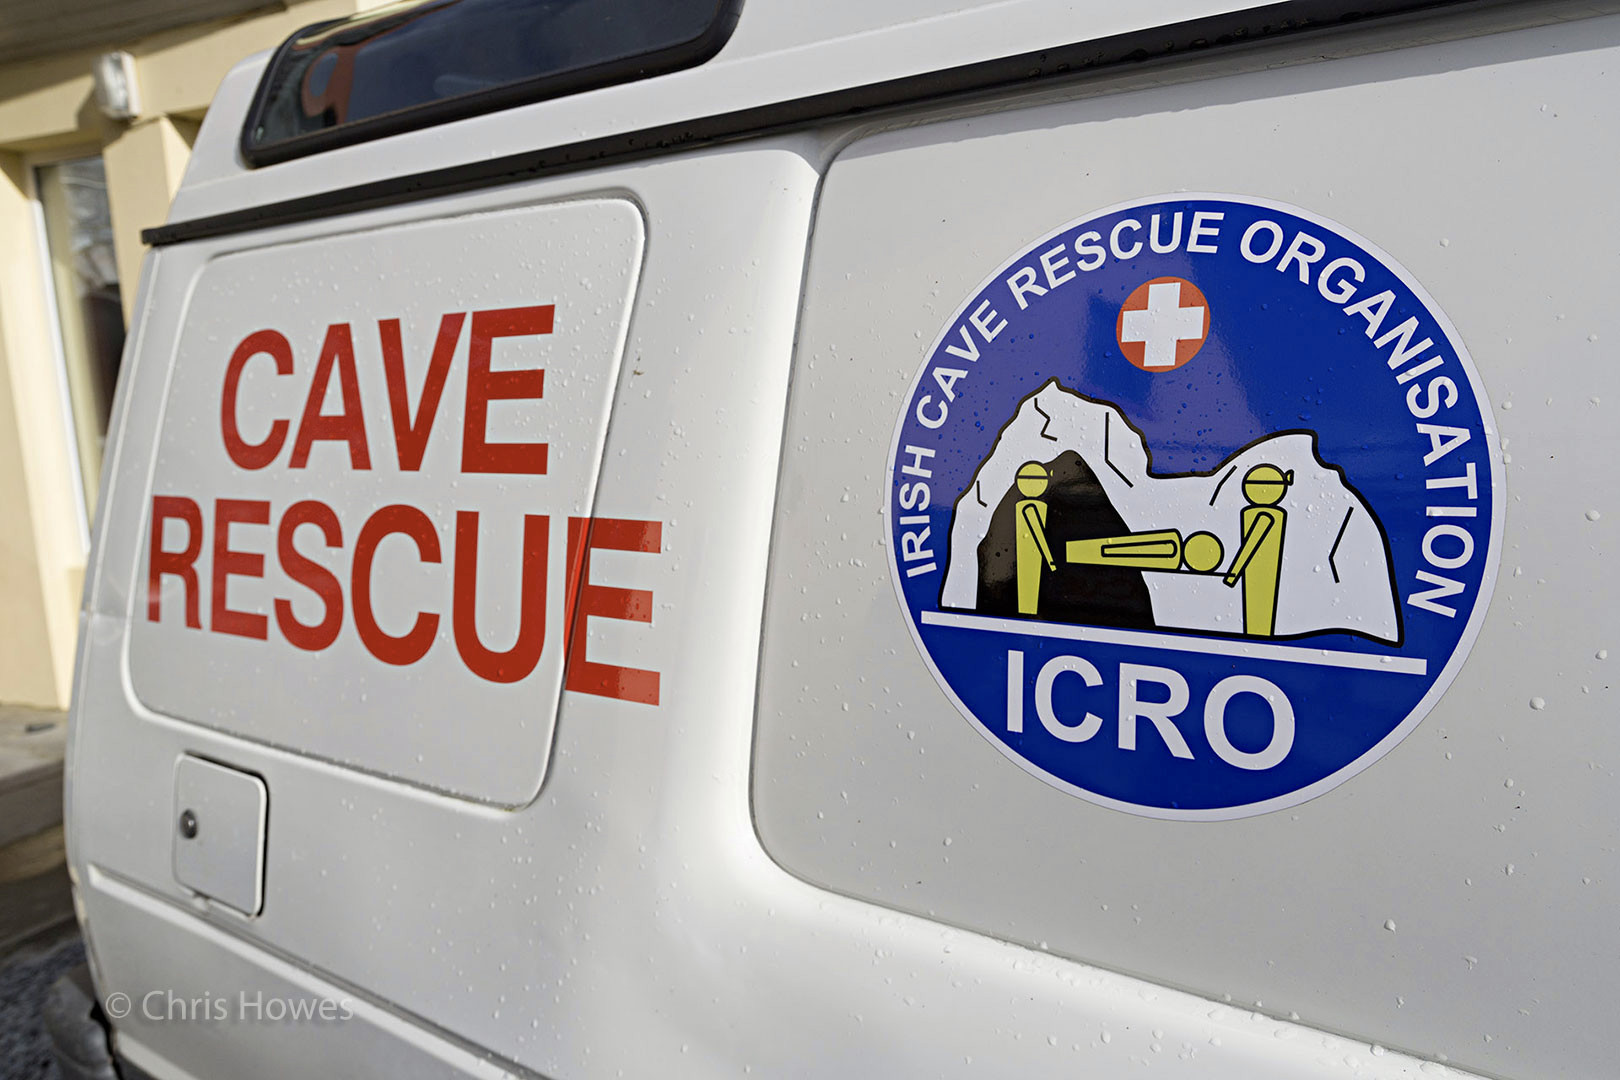 Irish Cave Rescue Organisation logo and name on Land Rover, Co. Clare, Ireland